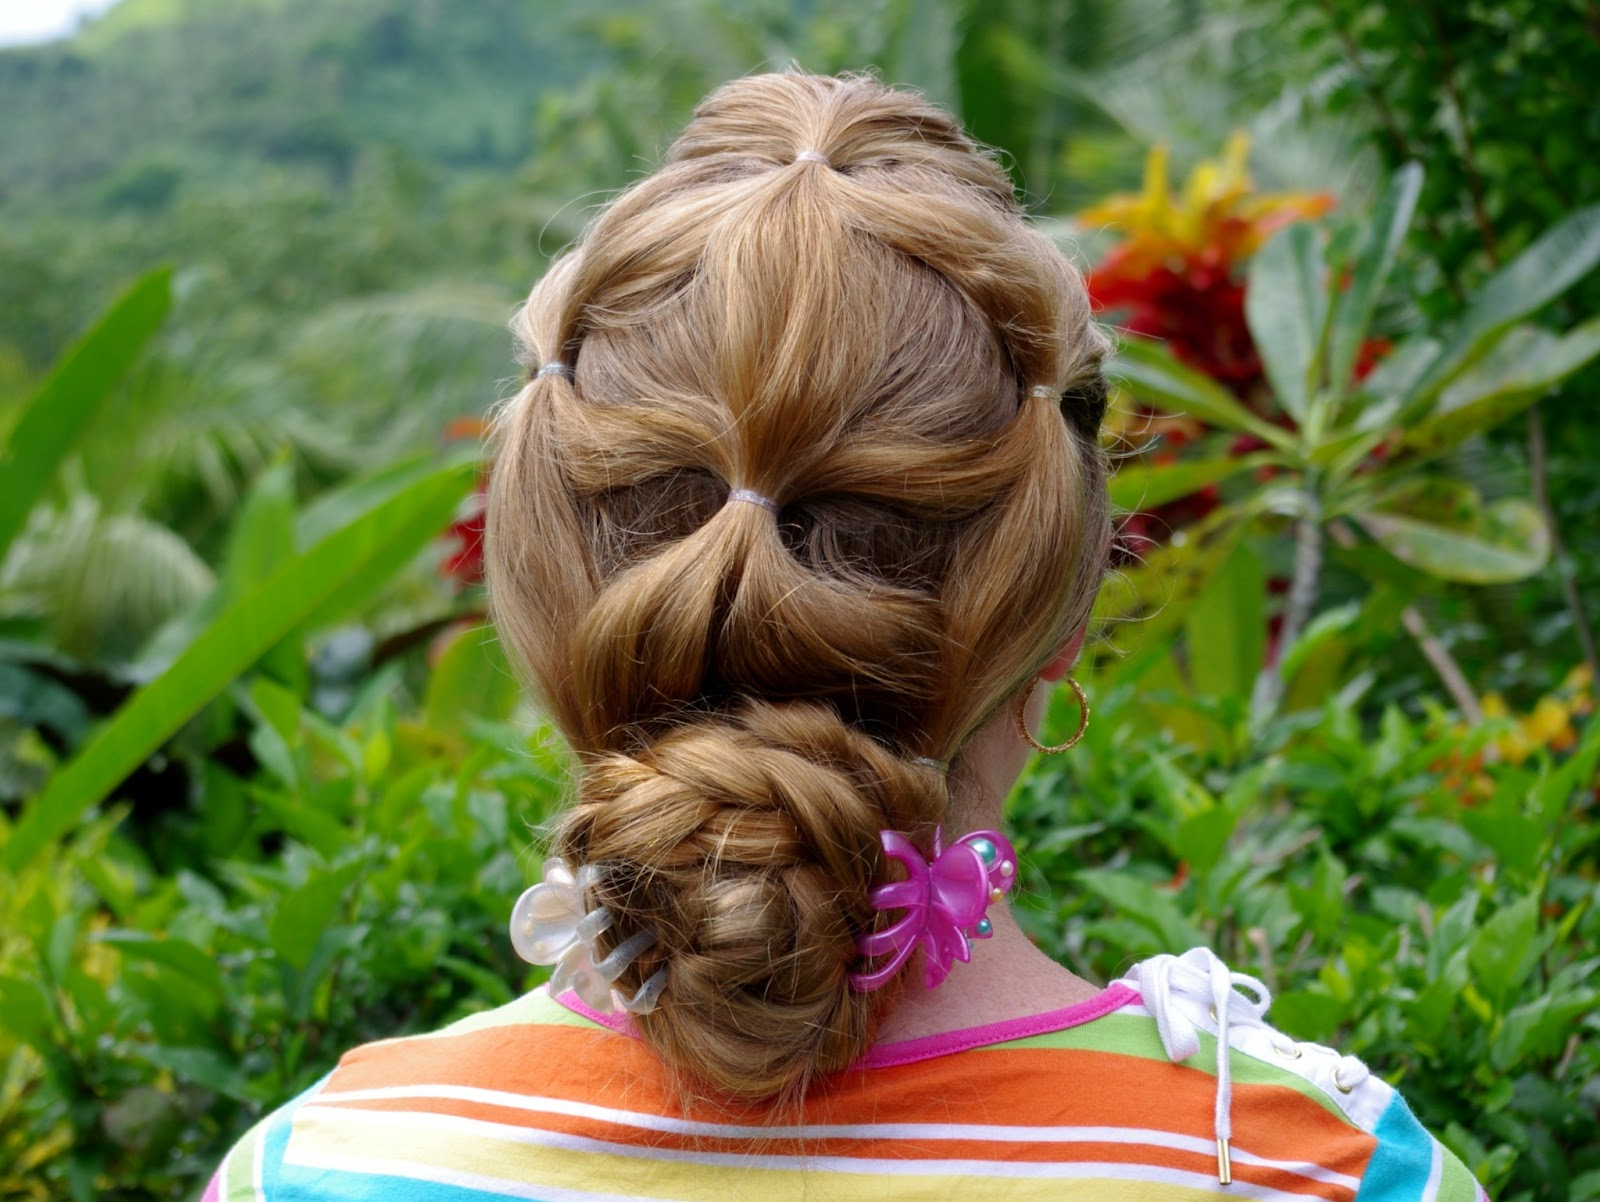 Braids & Hairstyles For Super Long Hair: Fun Ponytail Updo Regarding Well Liked Cinnamon Bun Braided Hairstyles (View 16 of 20)